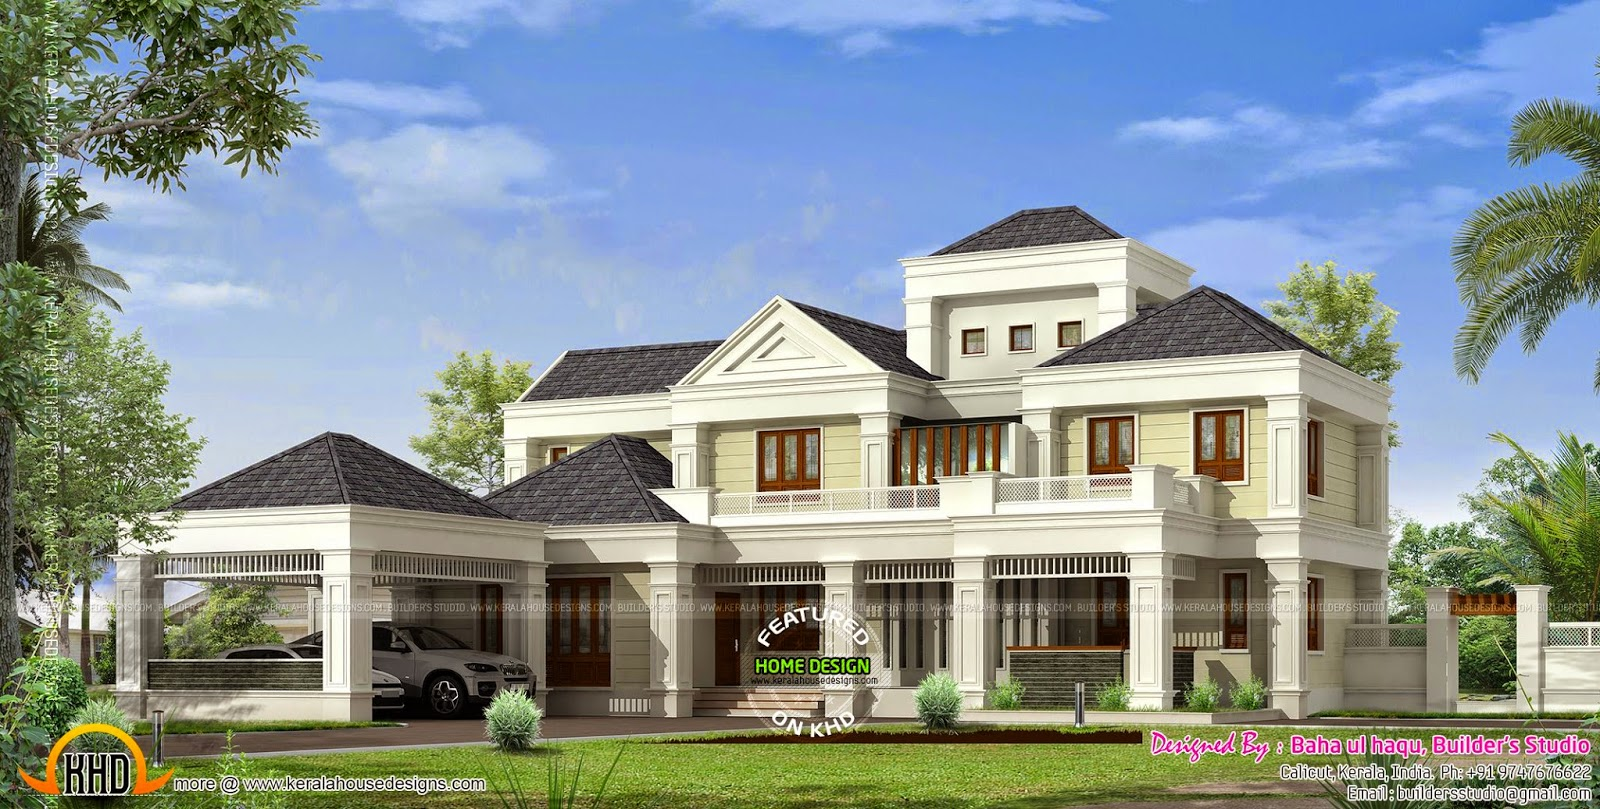 Colonial mix style house kerala home design and floor plans for Colonial style house plans kerala